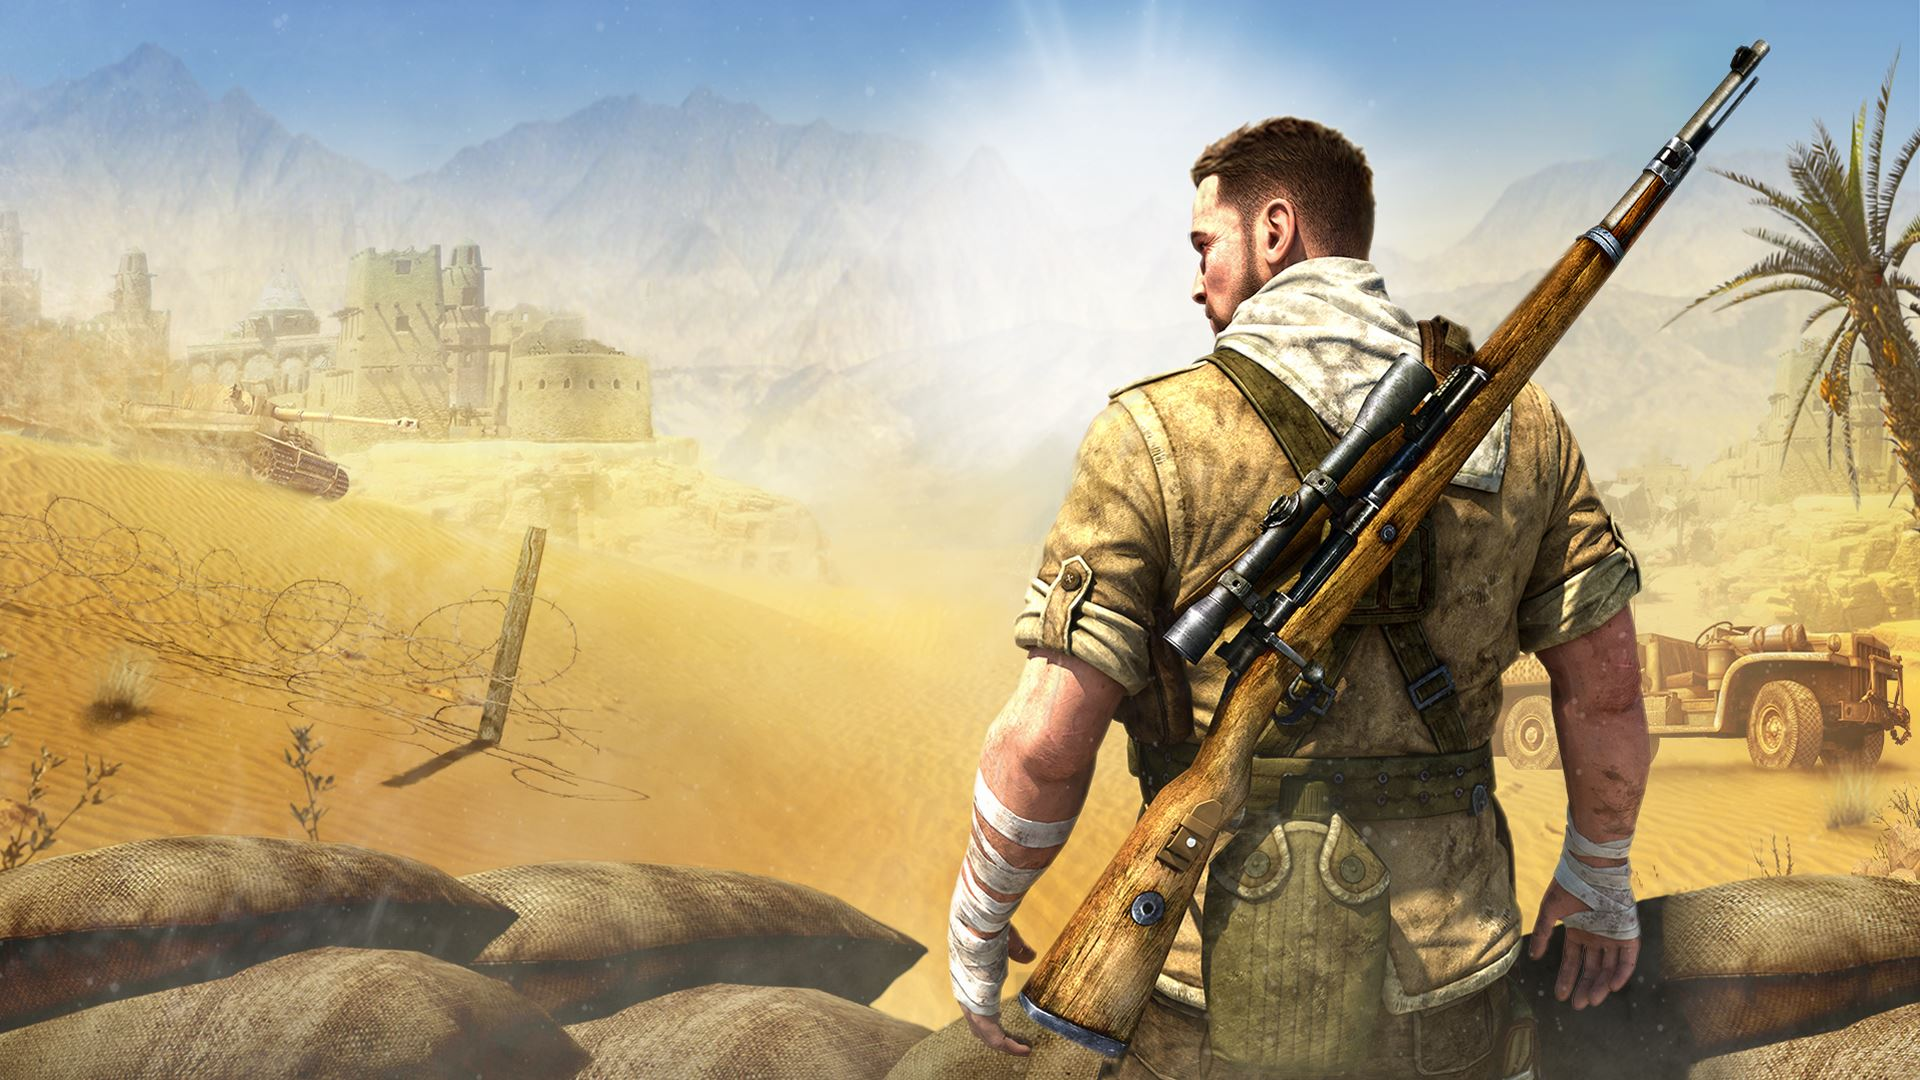 Sniper Elite 4 Leaked By LinkedIn Profile